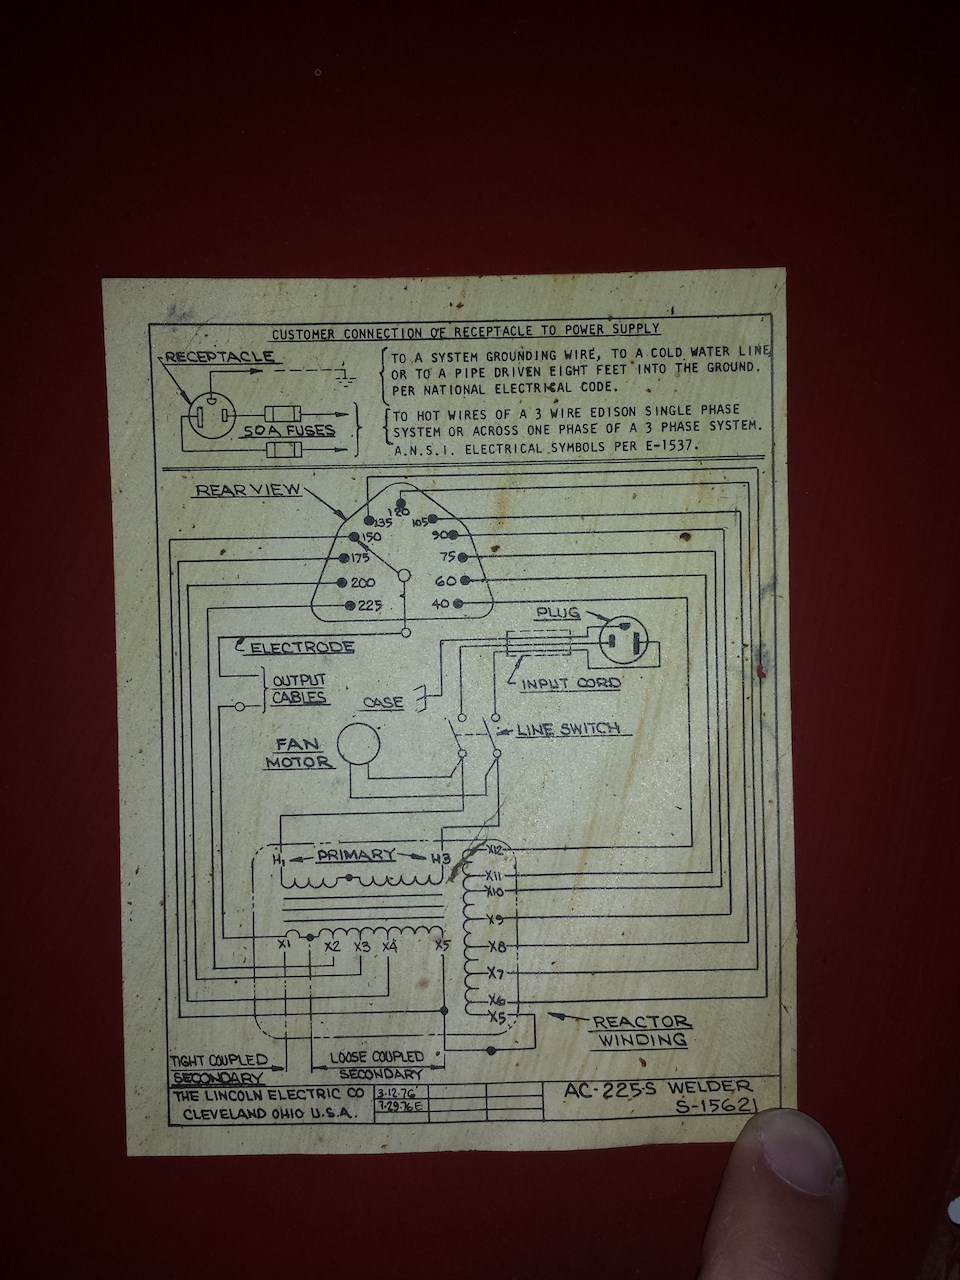 Schematic from the welder